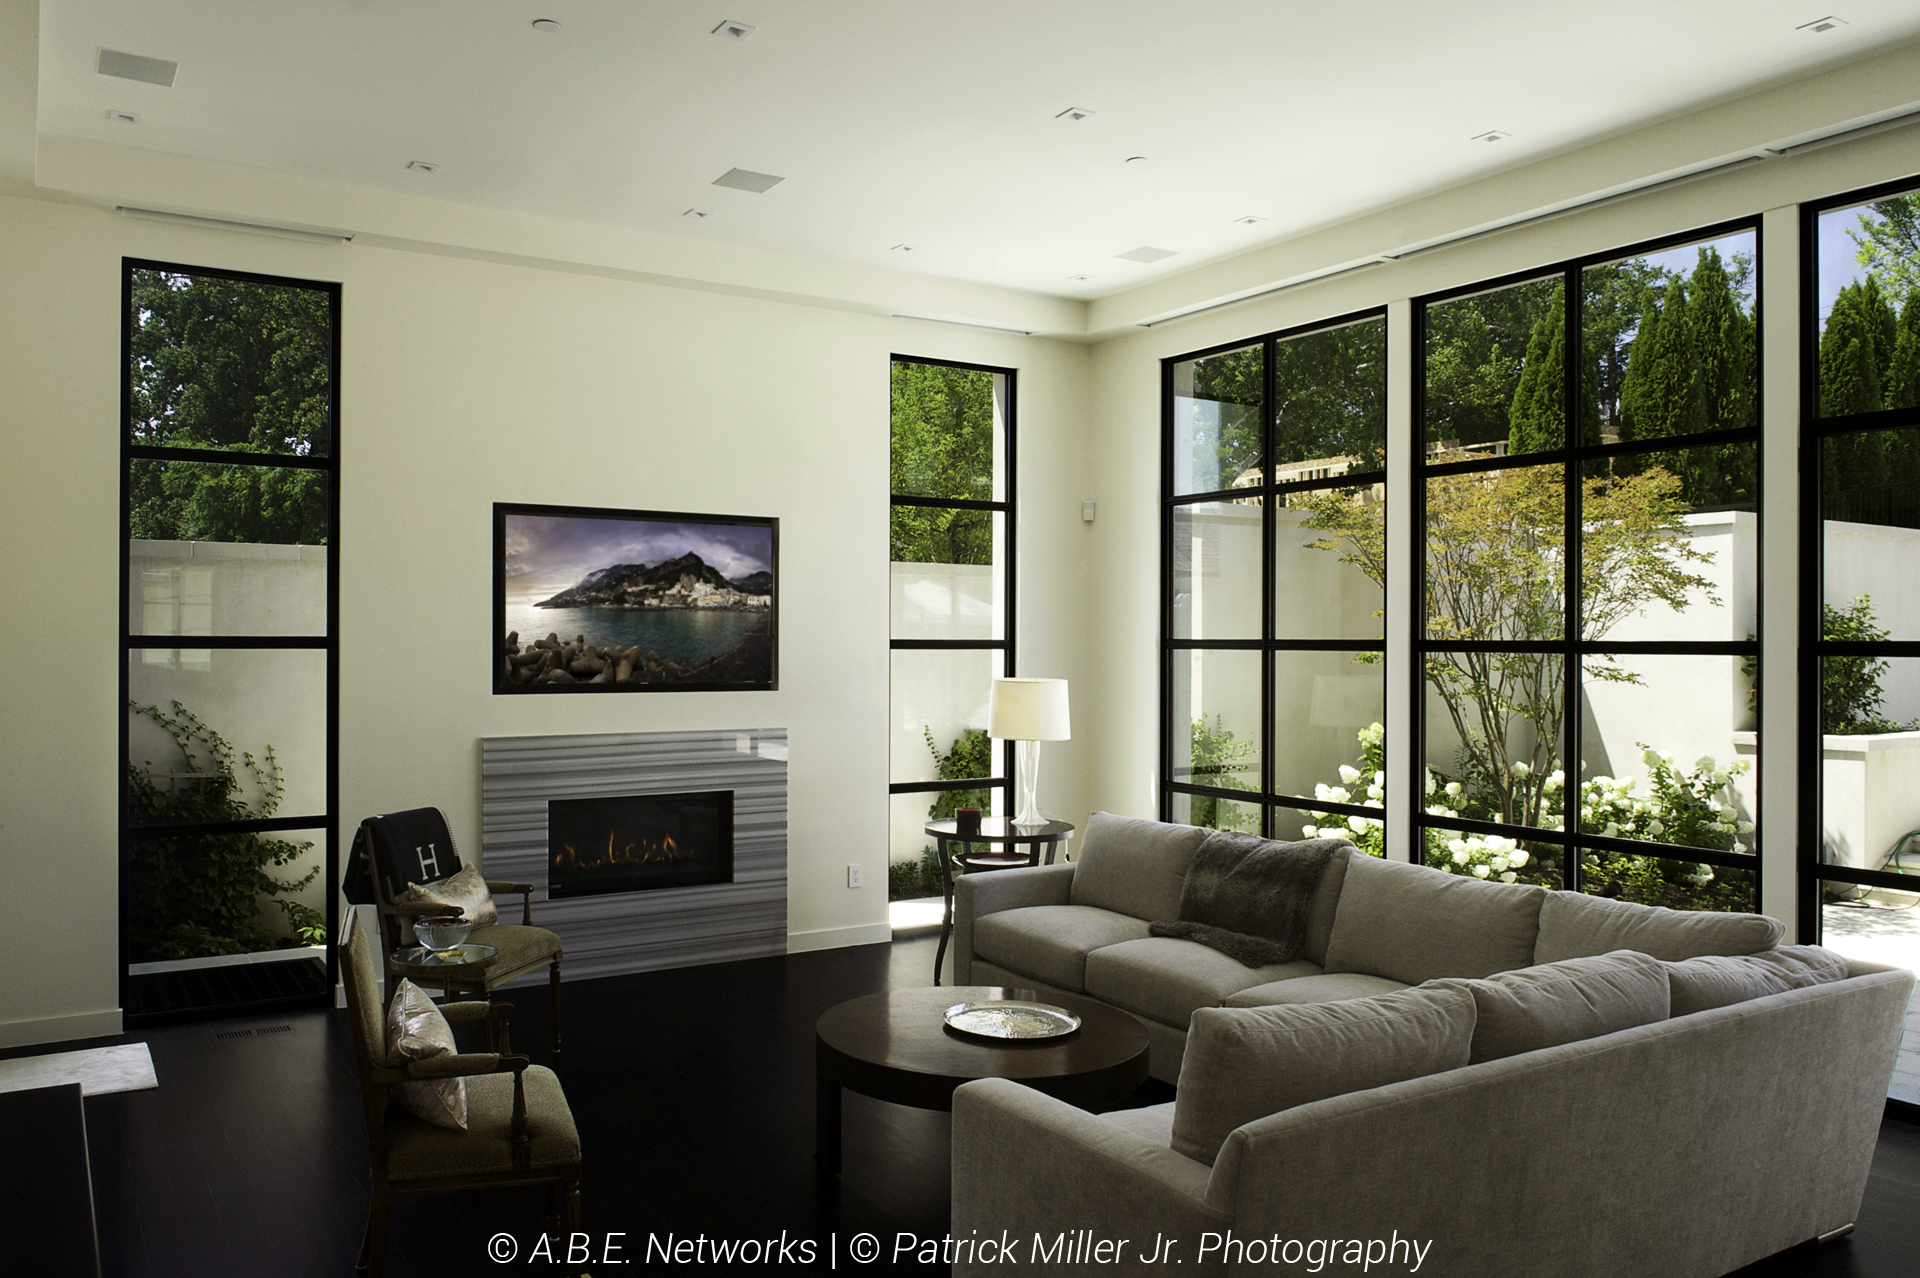 Sonance In-Ceiling Architectural Speakers_In-Wall Niche TV_Lutron Smart Home Lights and Shades_open